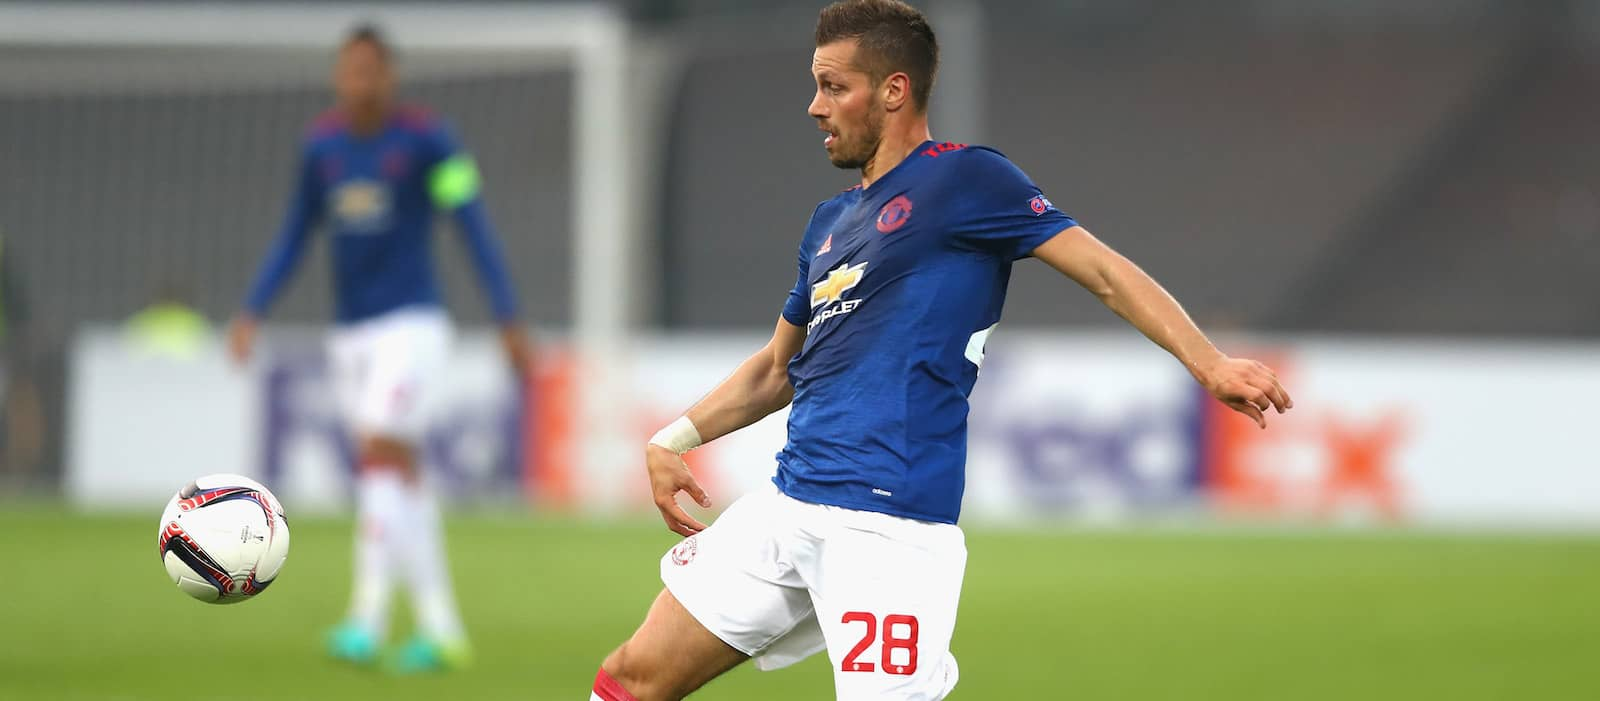 Morgan Schneiderlin: I lost the joy of football at Manchester United